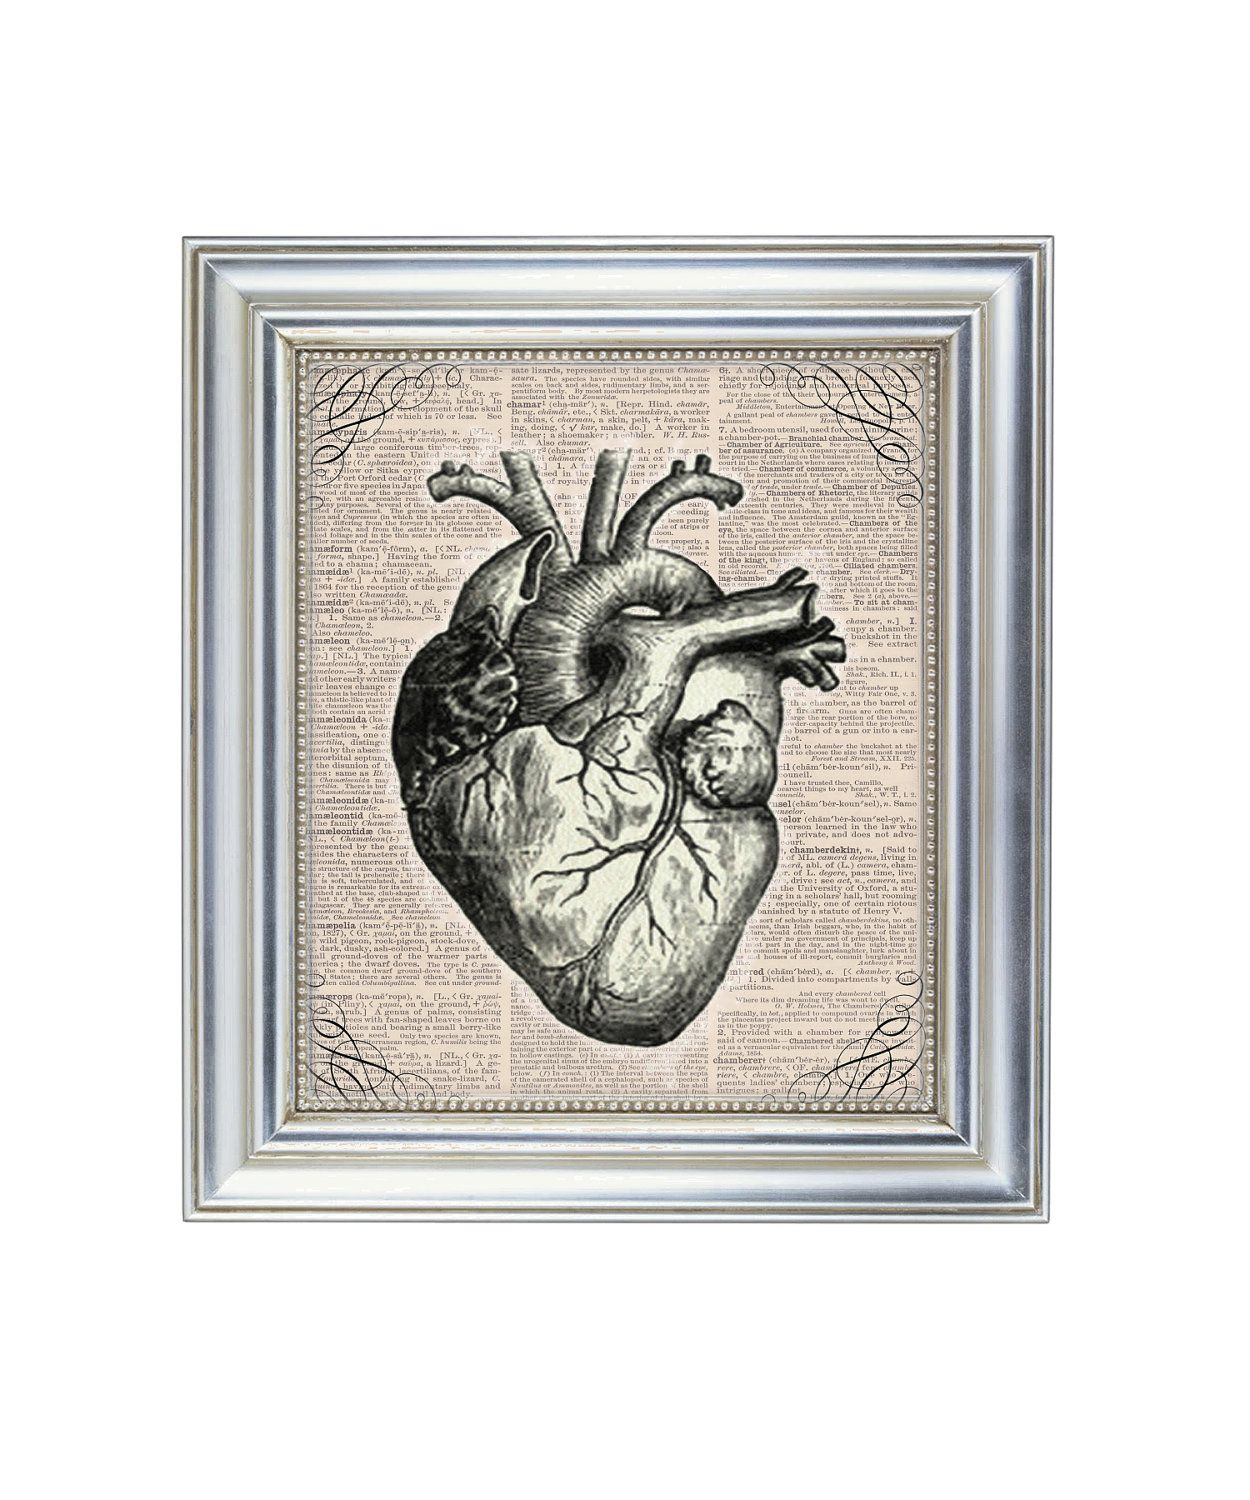 The Tell Tale Heart Antique Heart Anatomical Illustration